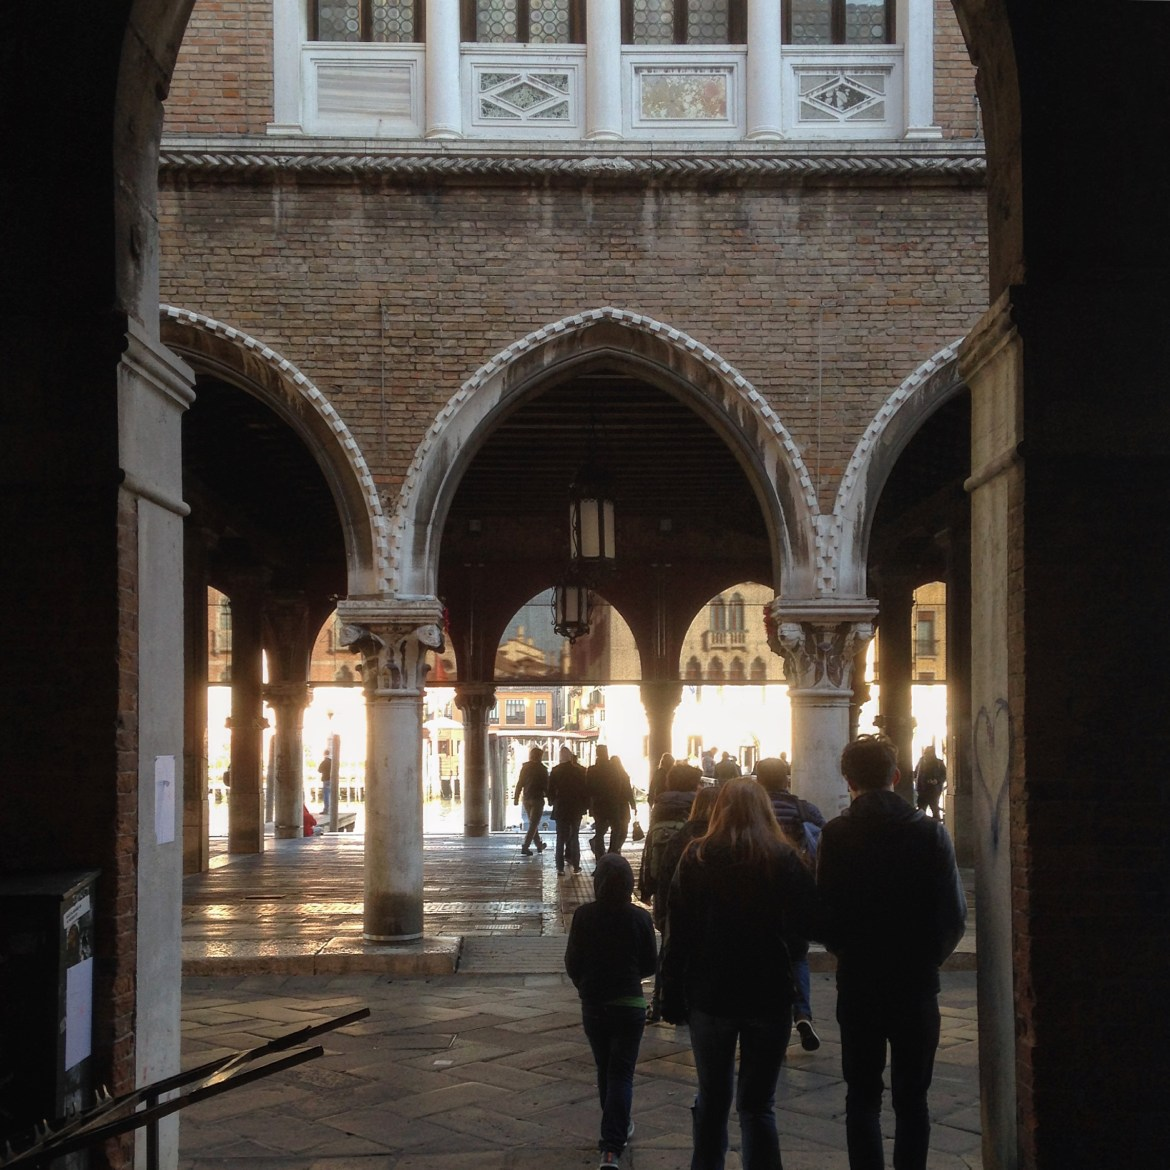 Venice Walks of Italy Tour, Eating in Venice